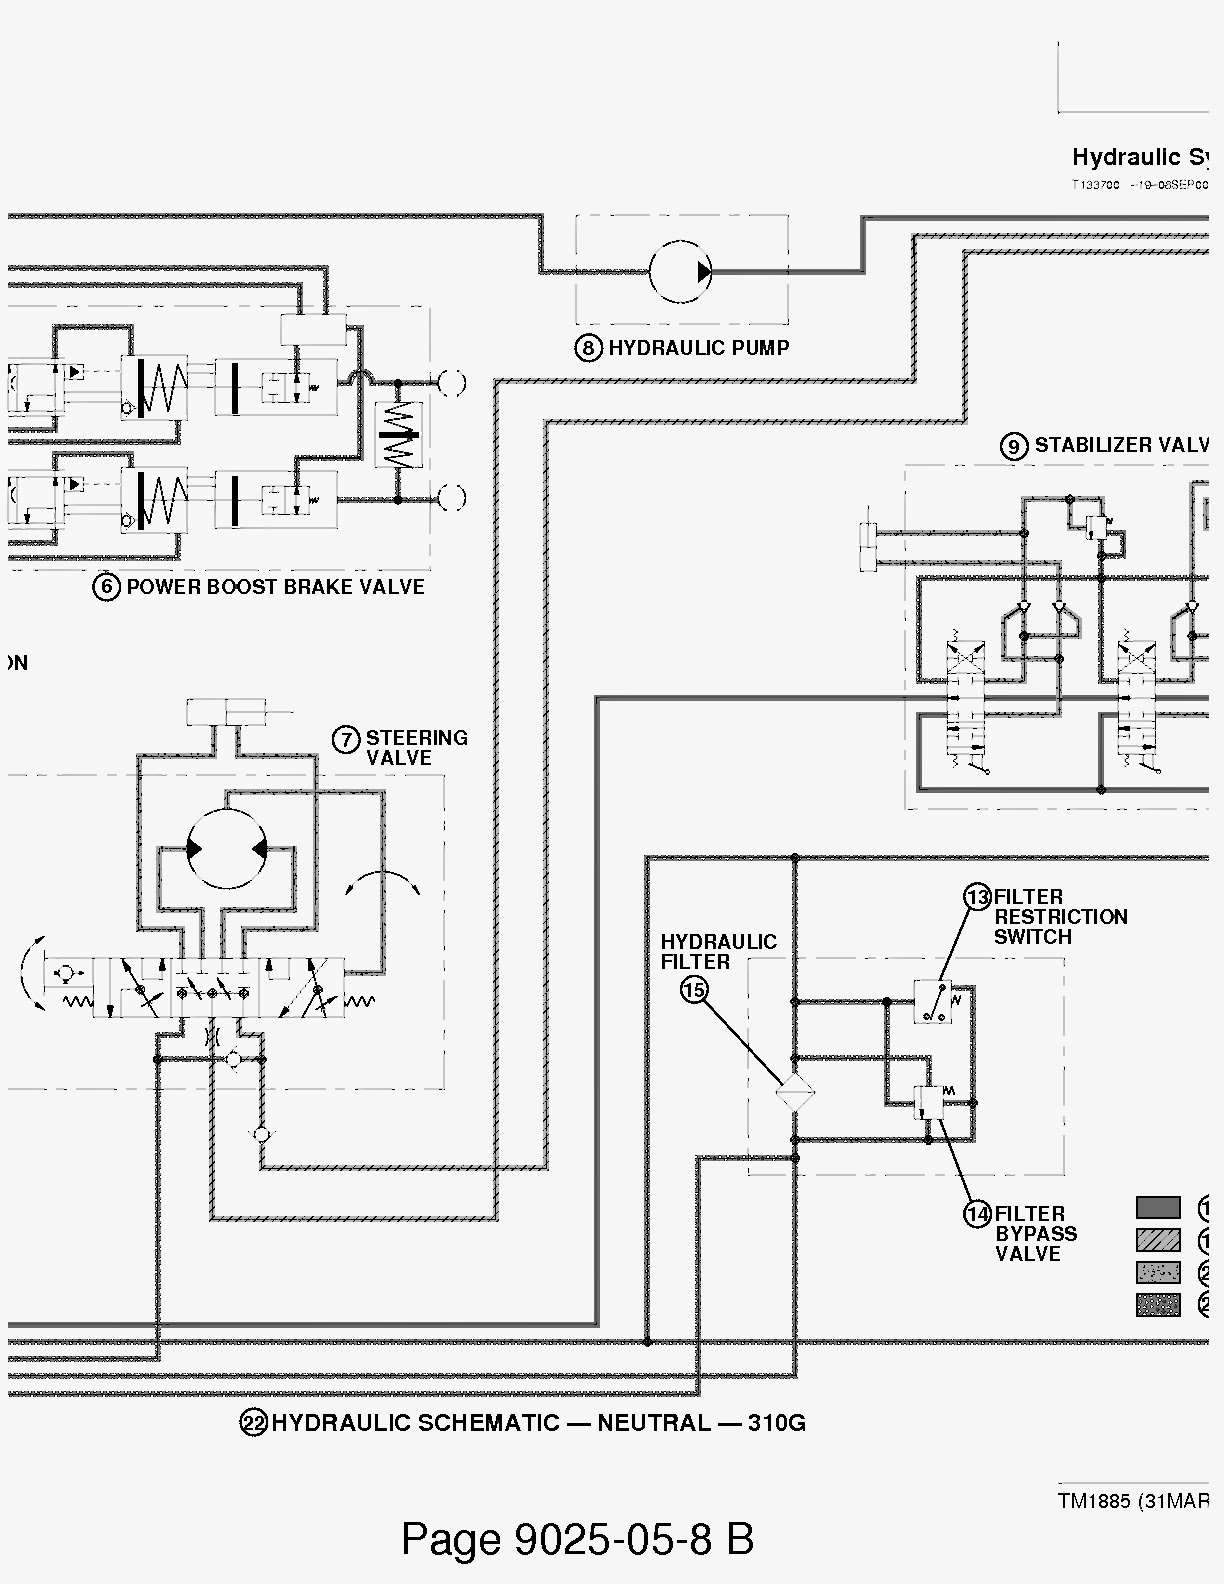 [FPER_4992]  DIAGRAM> John Deere 310se Wiring Diagram FULL Version HD Quality Wiring  Diagram - DIAGRAMOFHEART.GALLERIADUOMO.IT | John Deere 310 Wiring Diagram |  | Diagram Database